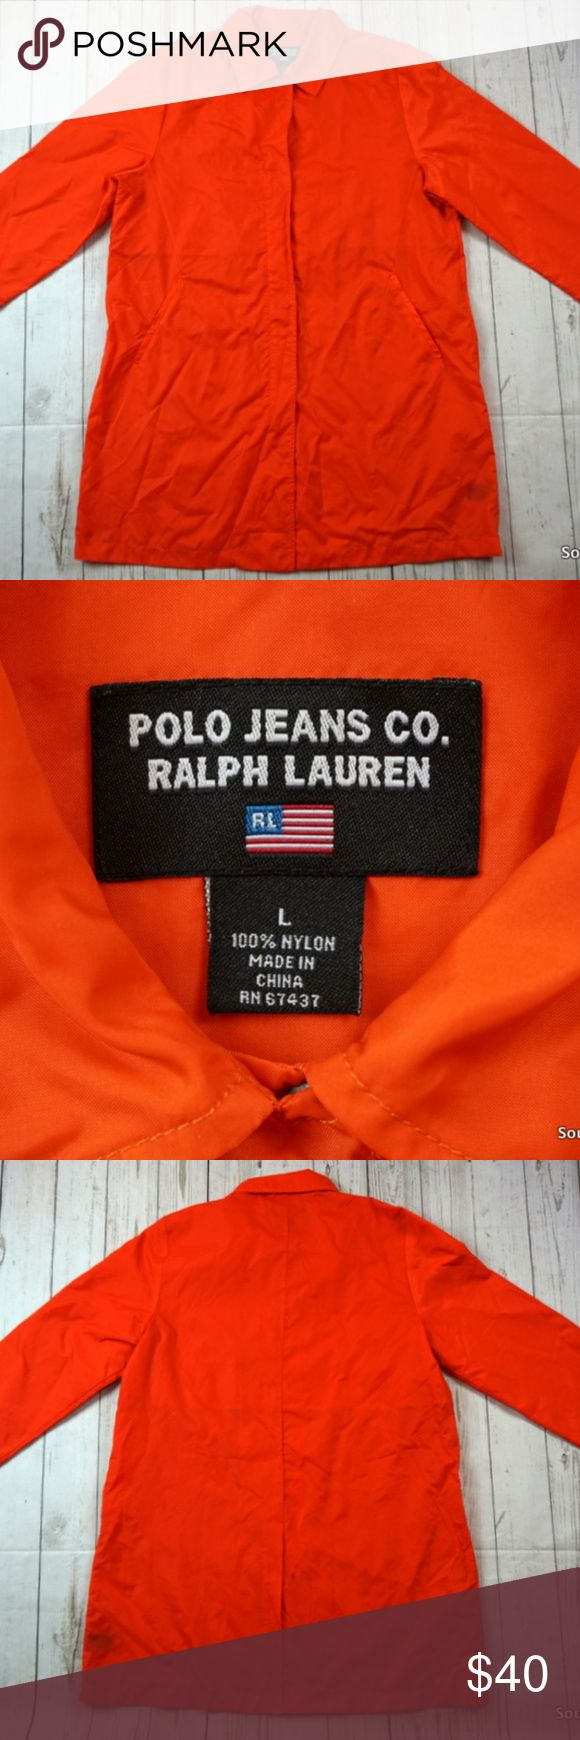 "Vintage Polo Sport Women's Rain Jacket Size Large Vintage Polo Sport Women's Rain Jacket Size Large, Orange, Full Zip & Button  Brand: Polo Sport Size: Women's Large Material: Nylon  Detailed Measurements: (Front Side of Garment has been measured laying flat on a table)  Sleeves:             25.5"" inches Chest:                21.5"" inches Length:                35"" inches  In good used shape and well cared for, ships in 1 business day or less from a clean and smoke free environment. Thanks…"